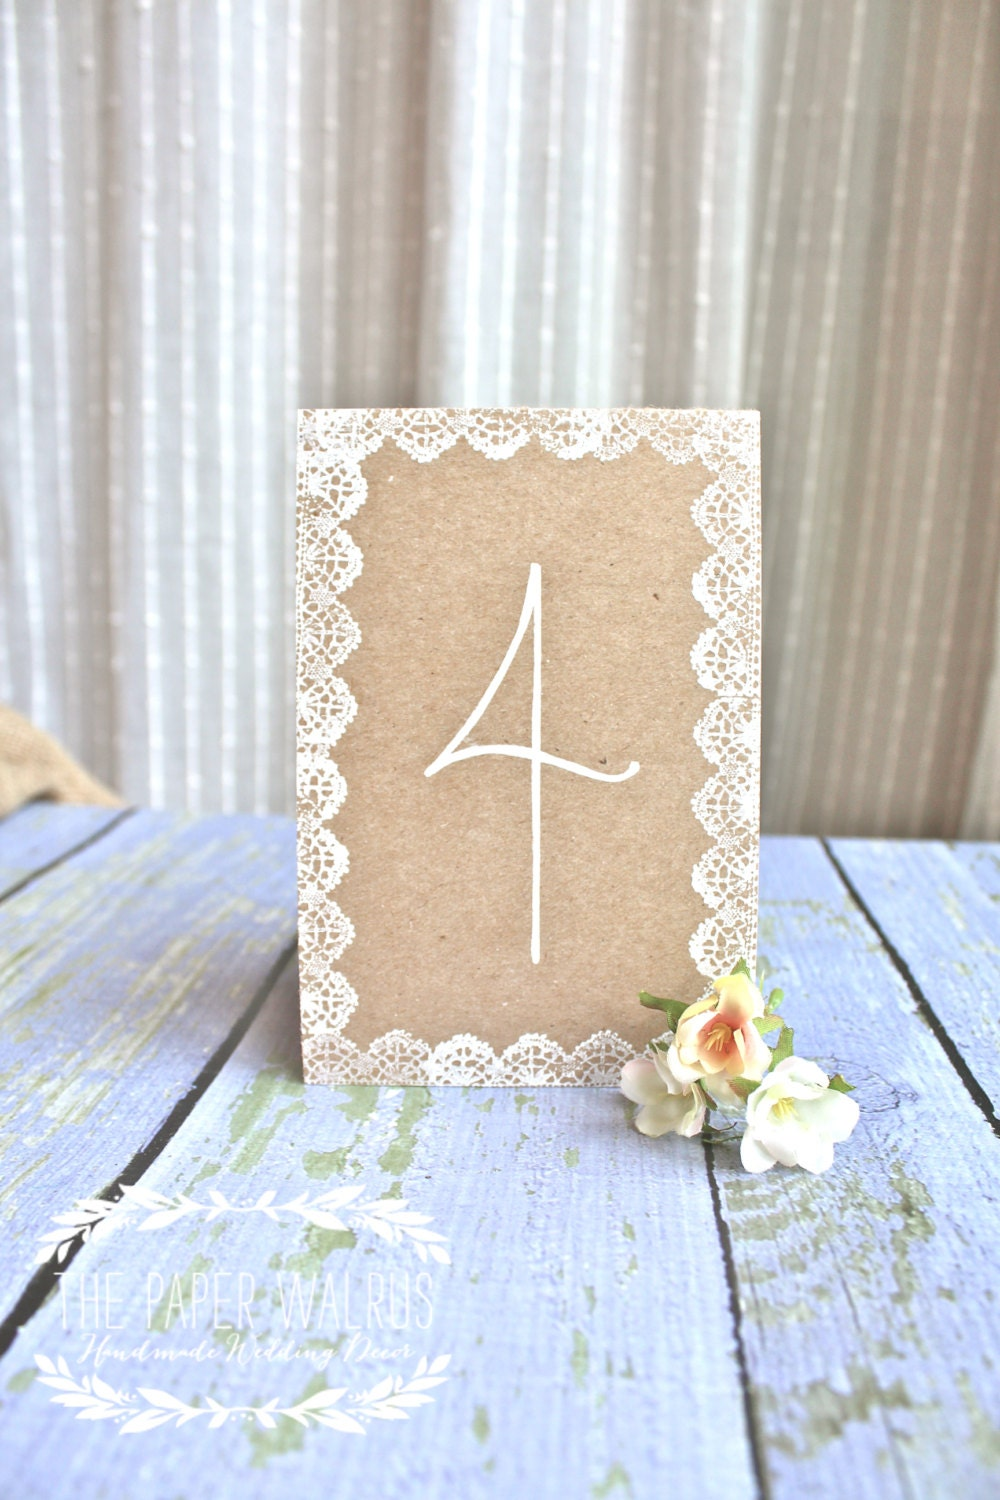 wedding table numbers kraft lace handmade by thepaperwalrus. Black Bedroom Furniture Sets. Home Design Ideas